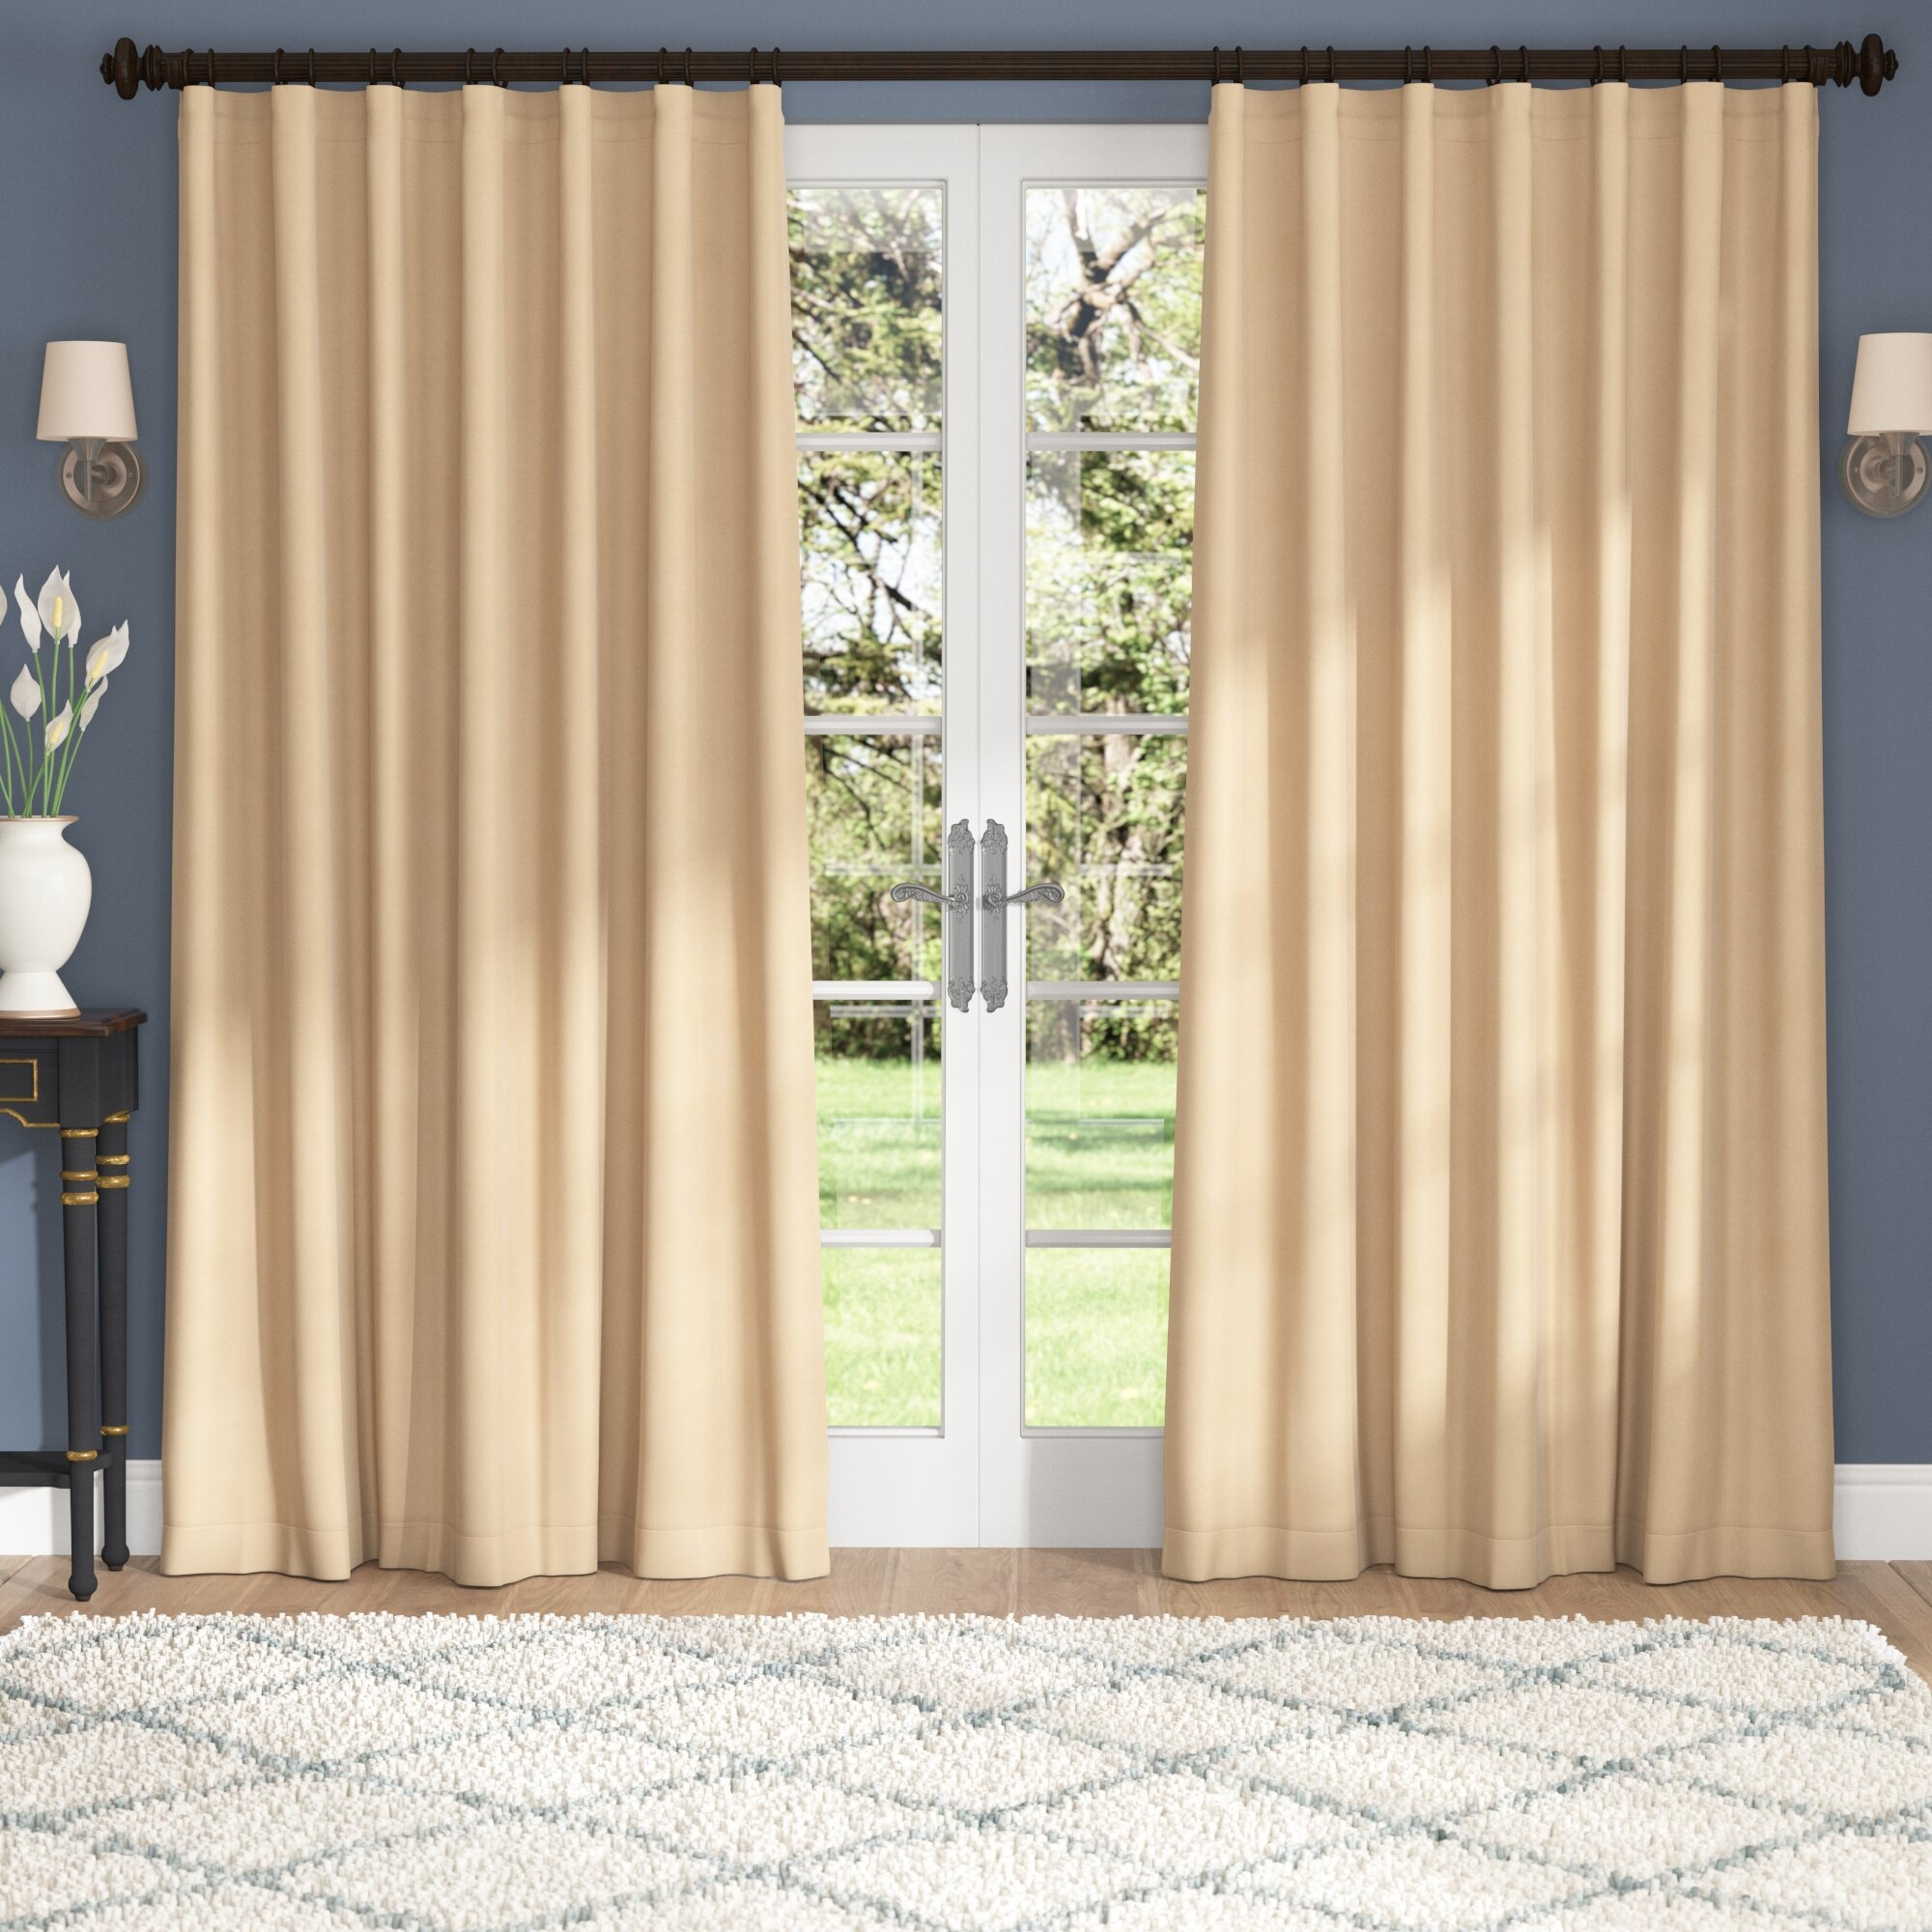 long treatments drapes how size window small mount to blackout inch hang do grommet curtains match need full extra literarywondrous curtain of wide grommets inside rods rod